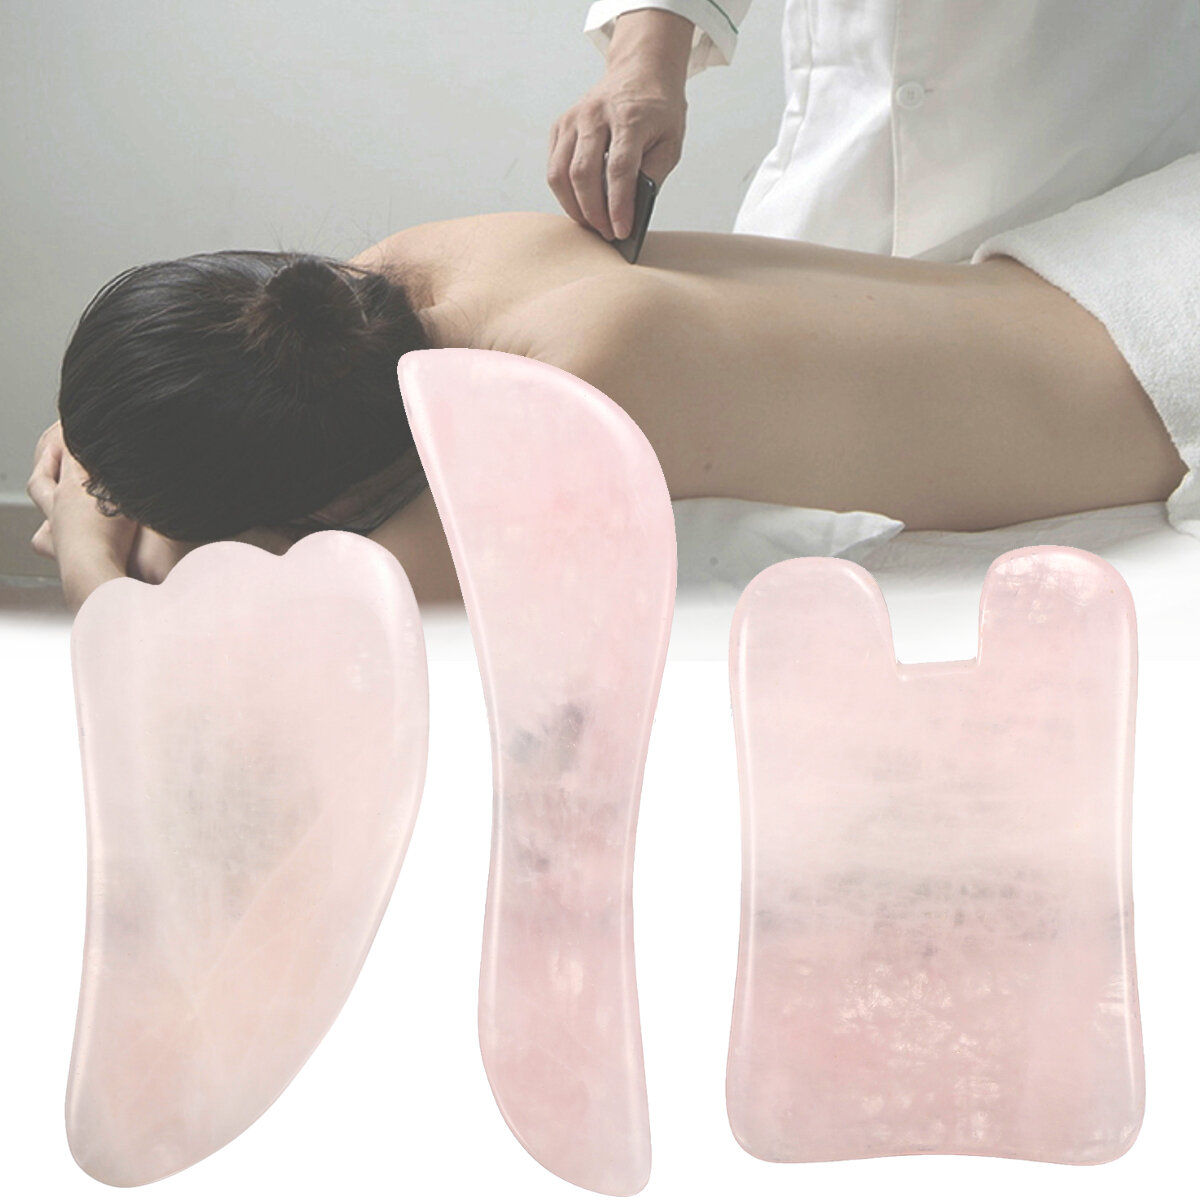 Natural Gua Sha Guasha Facial Raspagem Manual Massagem Ferramenta Quartzo Jade Board Massagemr